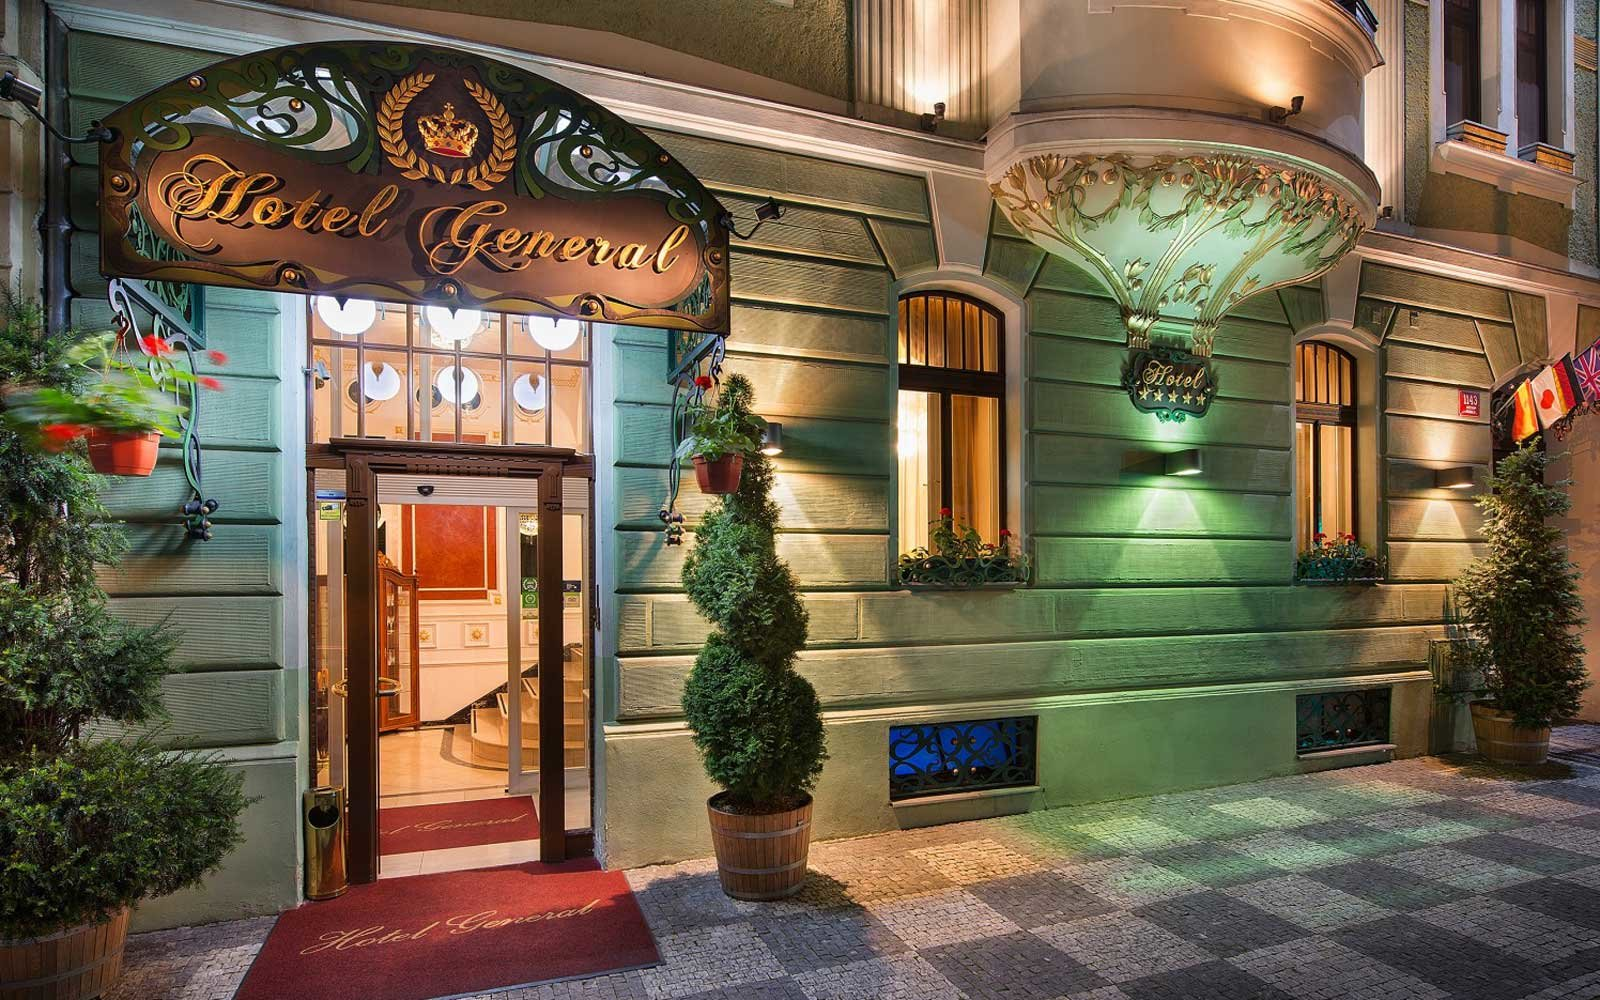 Exterior of the Hotel General in Prague, Czech Republic